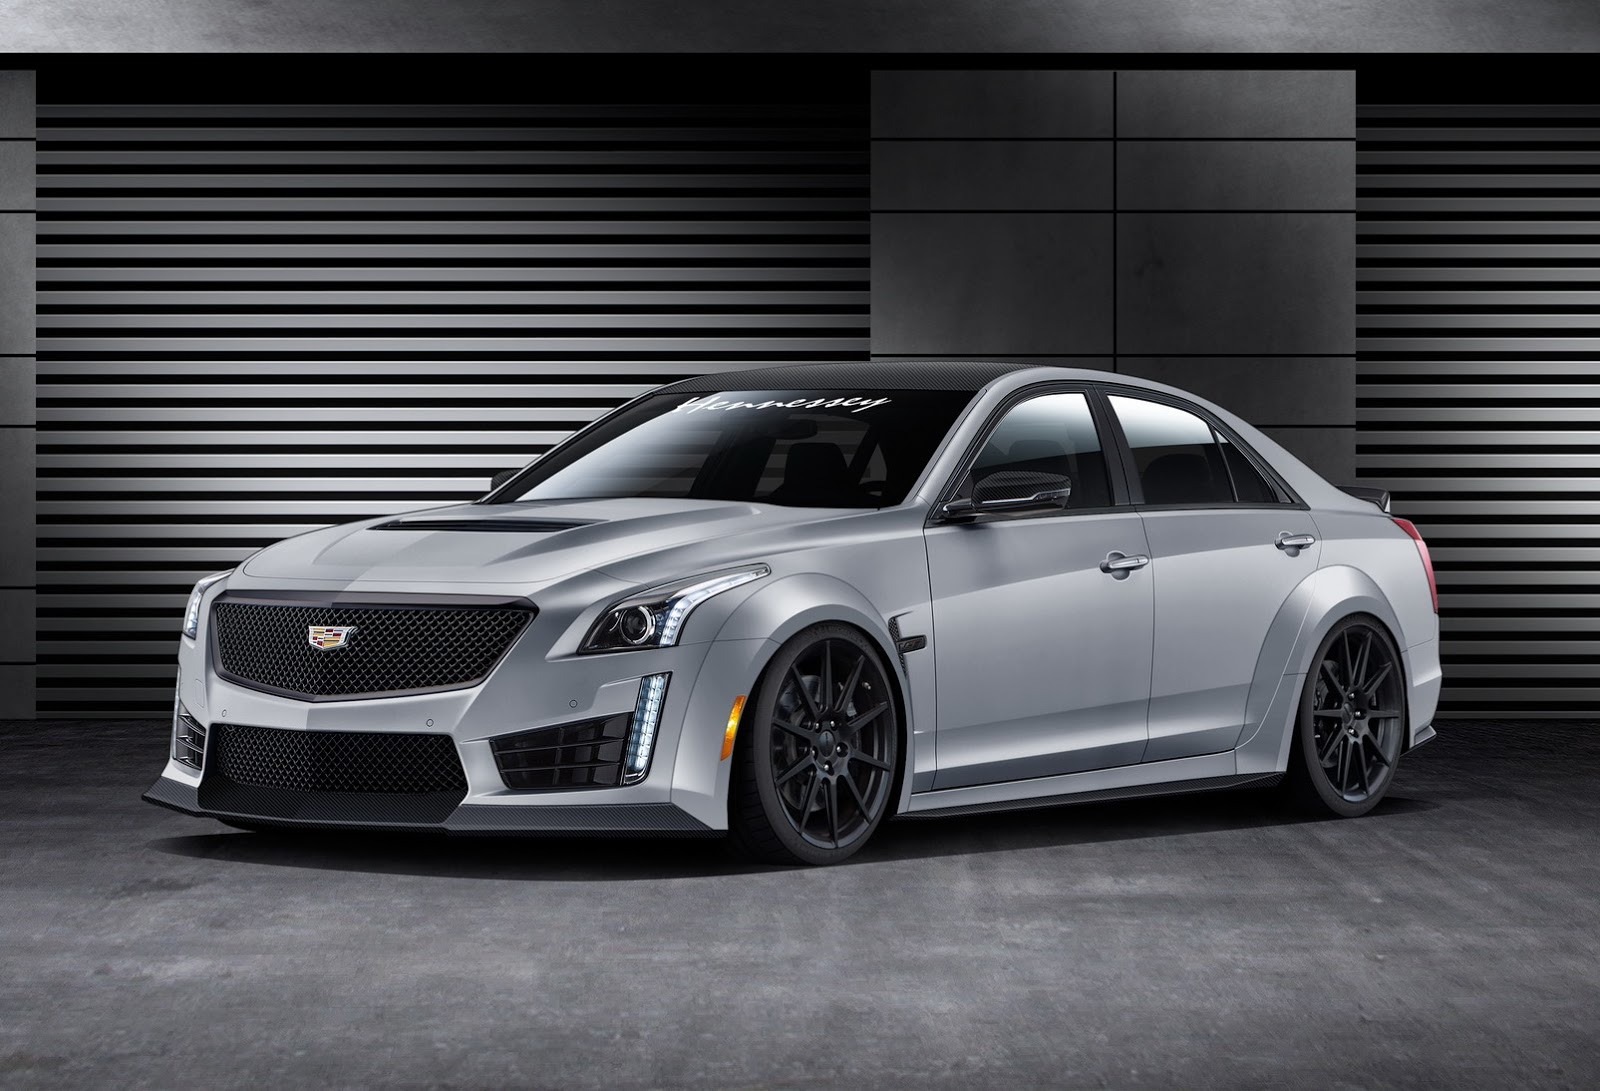 hennessey bumps new 2016 cadillac cts v up to 1 000 horses. Black Bedroom Furniture Sets. Home Design Ideas